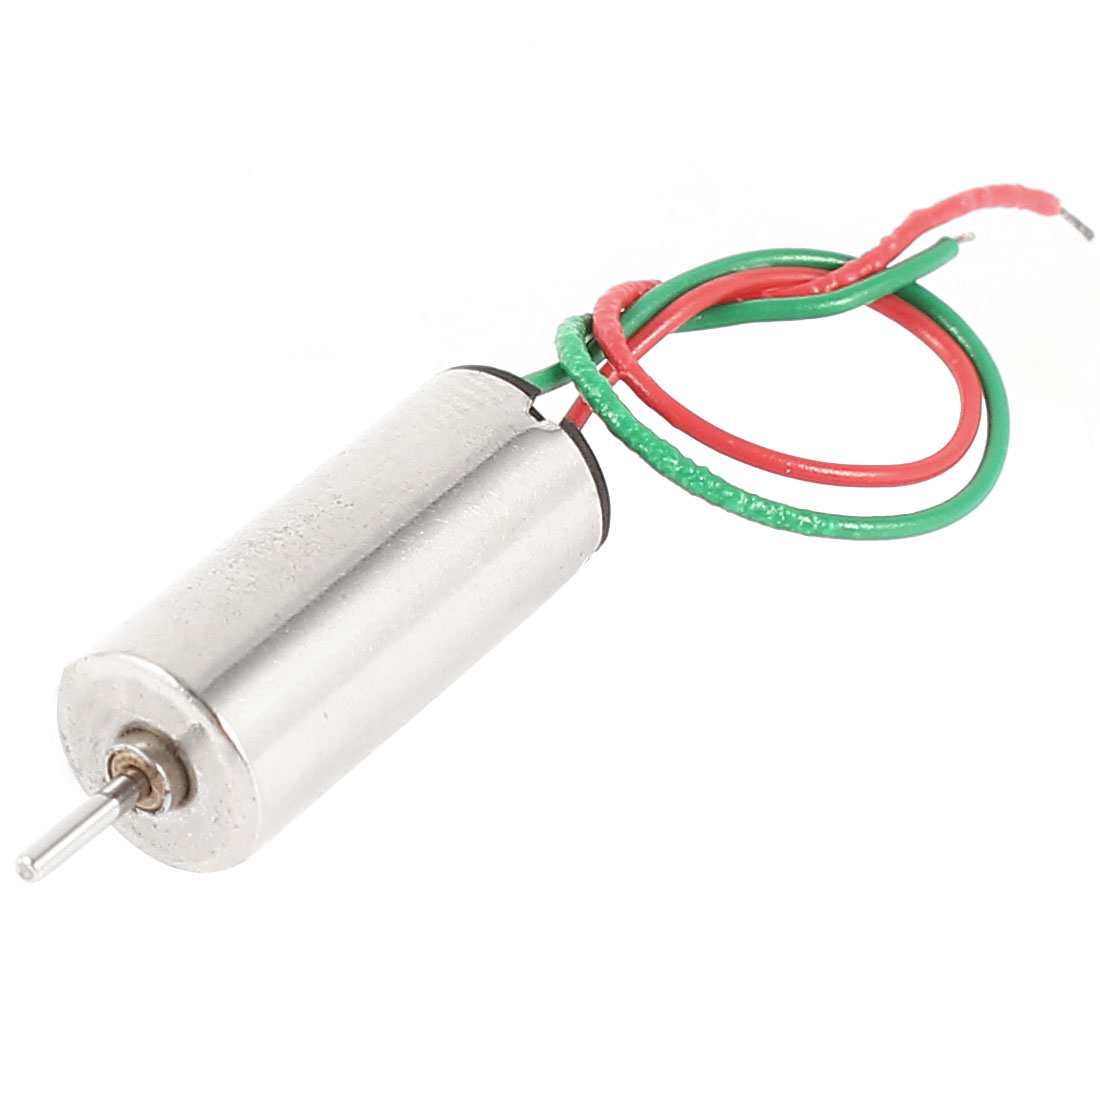 DC 1.5-6V 50000RPM Electric Coreless Mini Motor 6x14mm for RC Model Toys